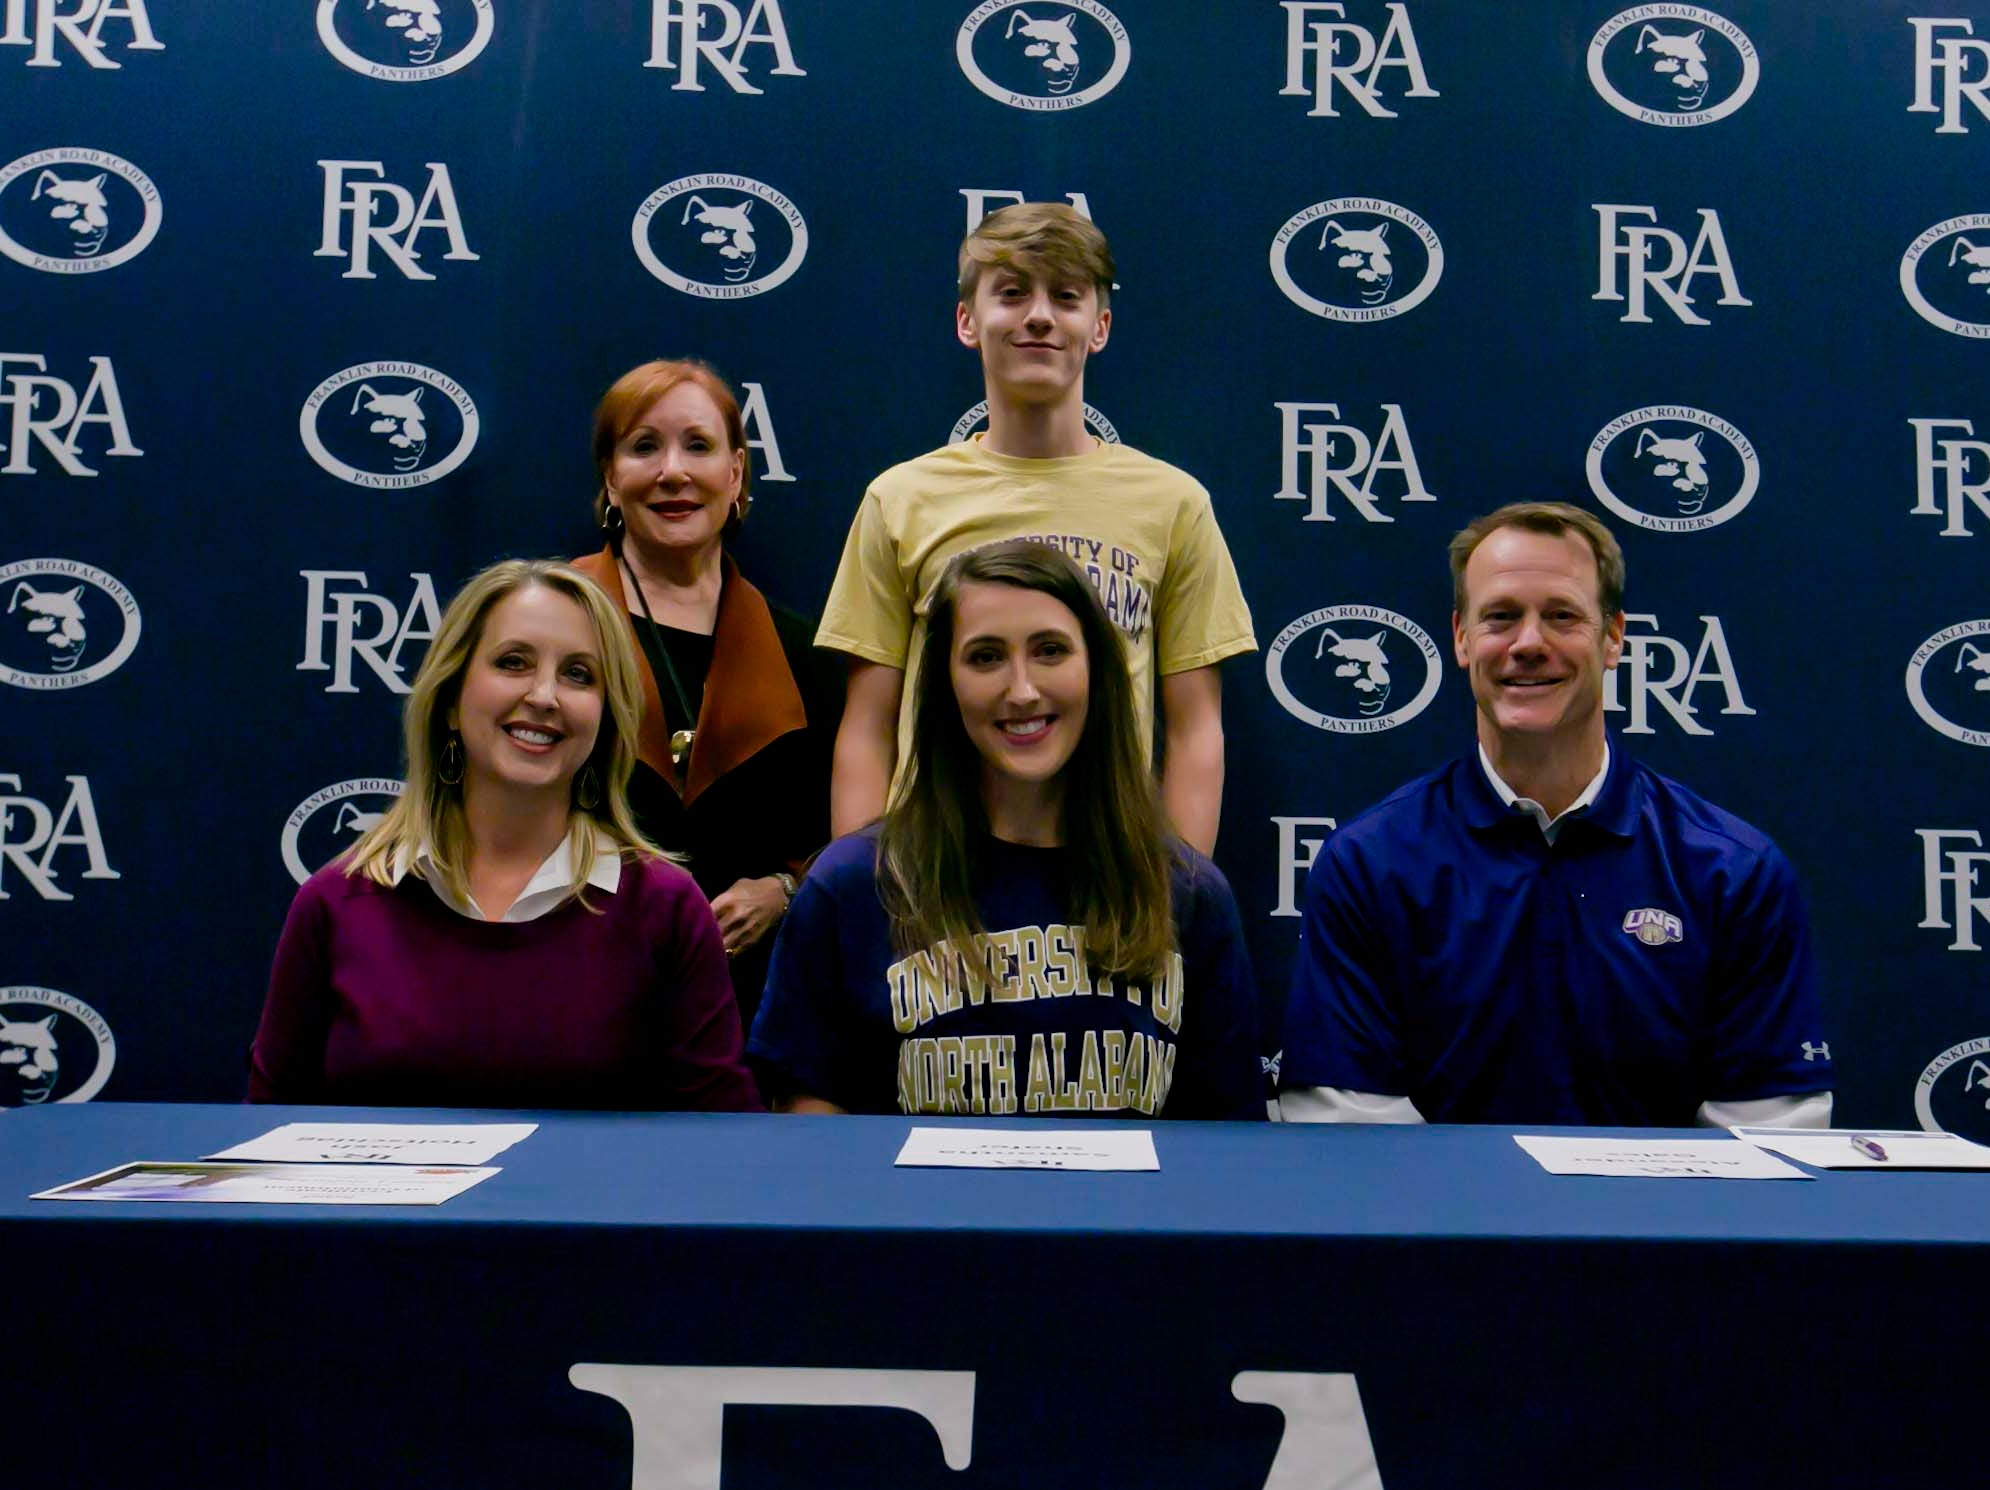 FRA's Samantha Shafer signed with North Alabama to play volleyball.